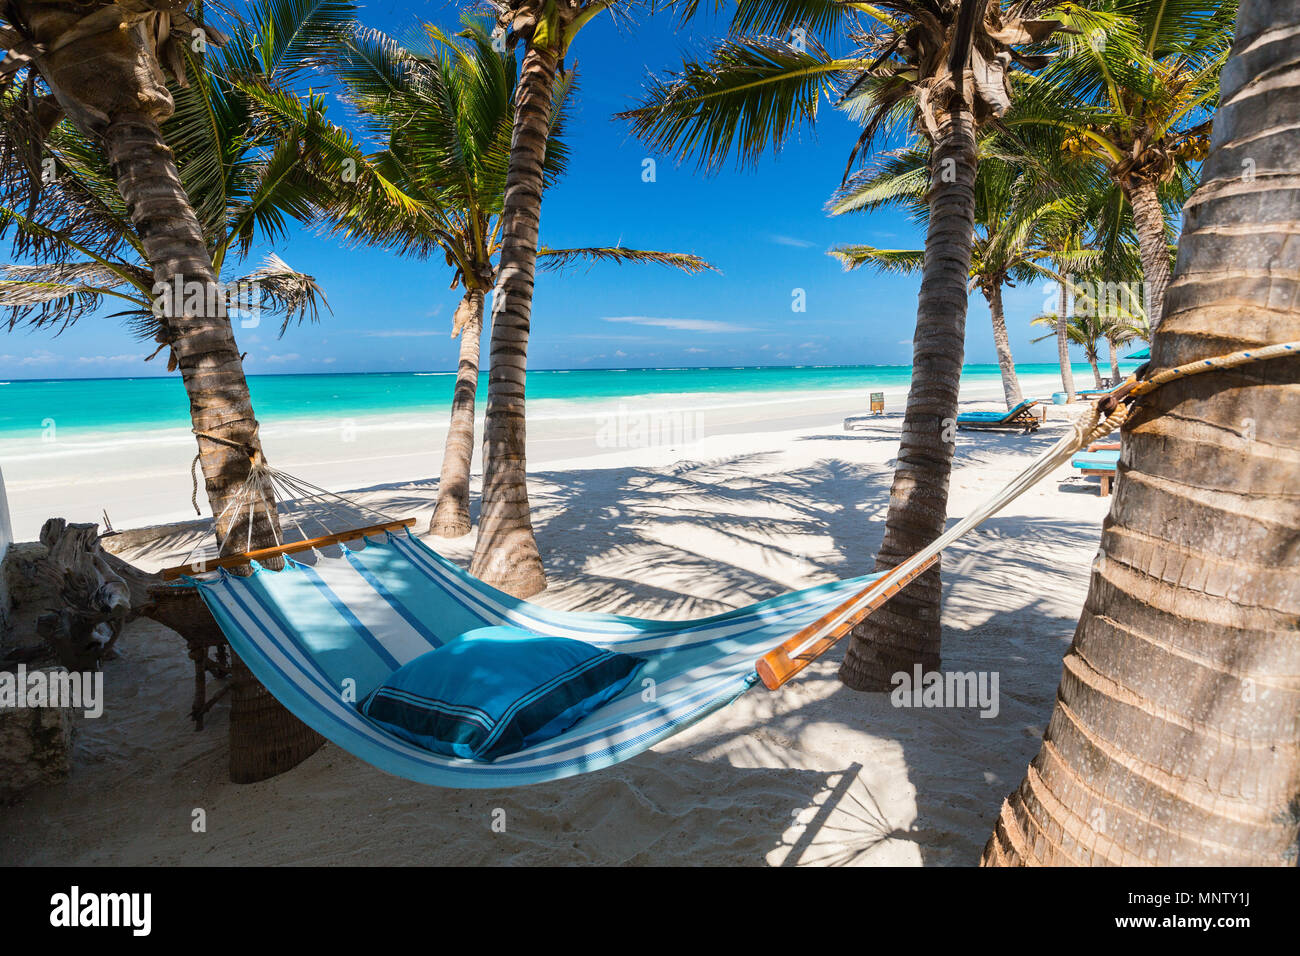 Perfect tropical beach with palm trees and hammock - Stock Image